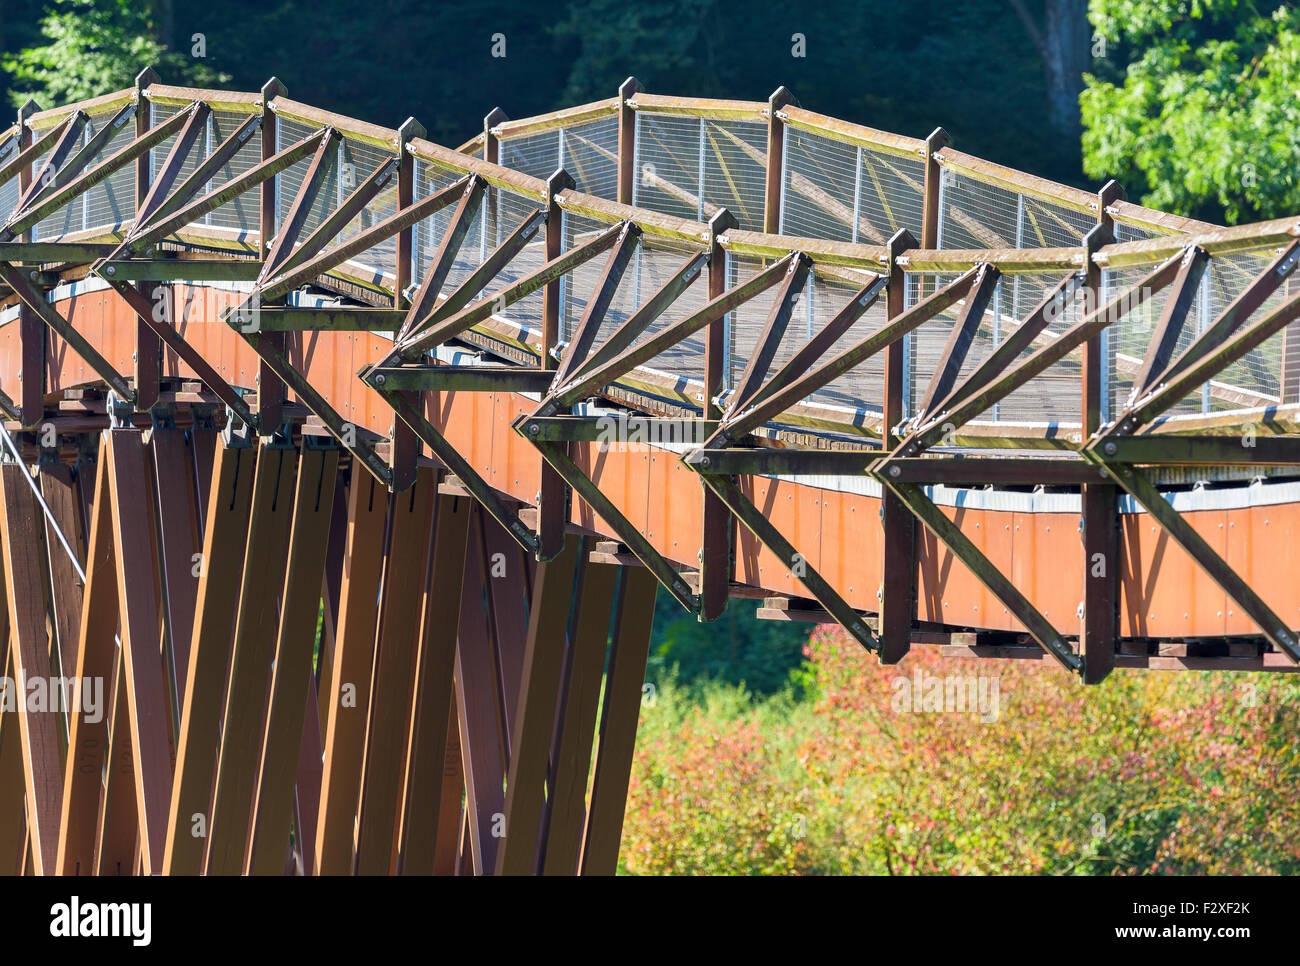 waved wooden bridge in Essing, Altmühltal, Bavaria, 'Oberpfalz' Germany. called Tatzelwurm, Longest - Stock Image